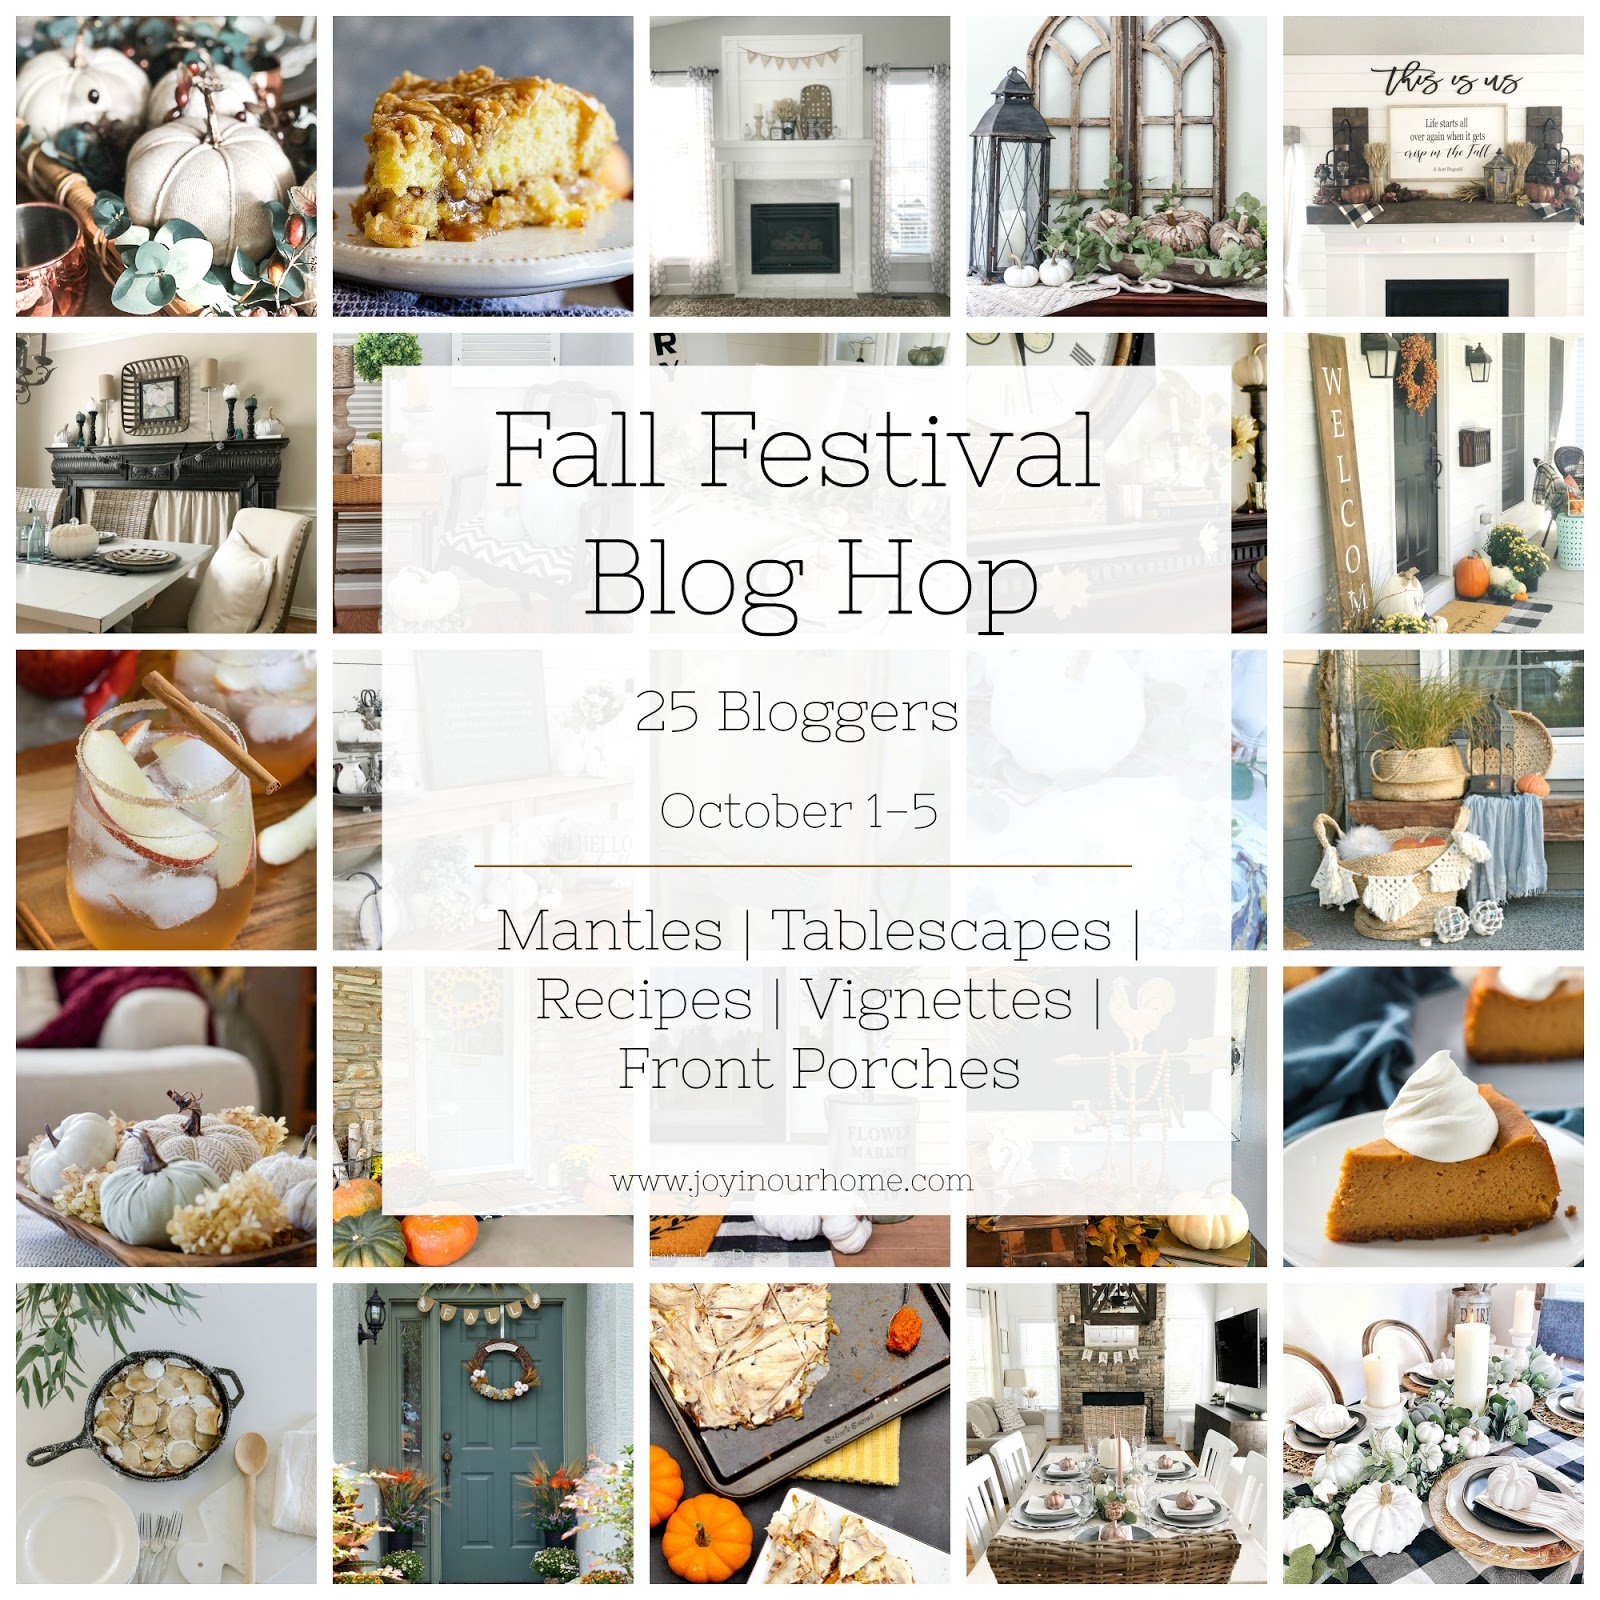 Fall Festival Blog Hop